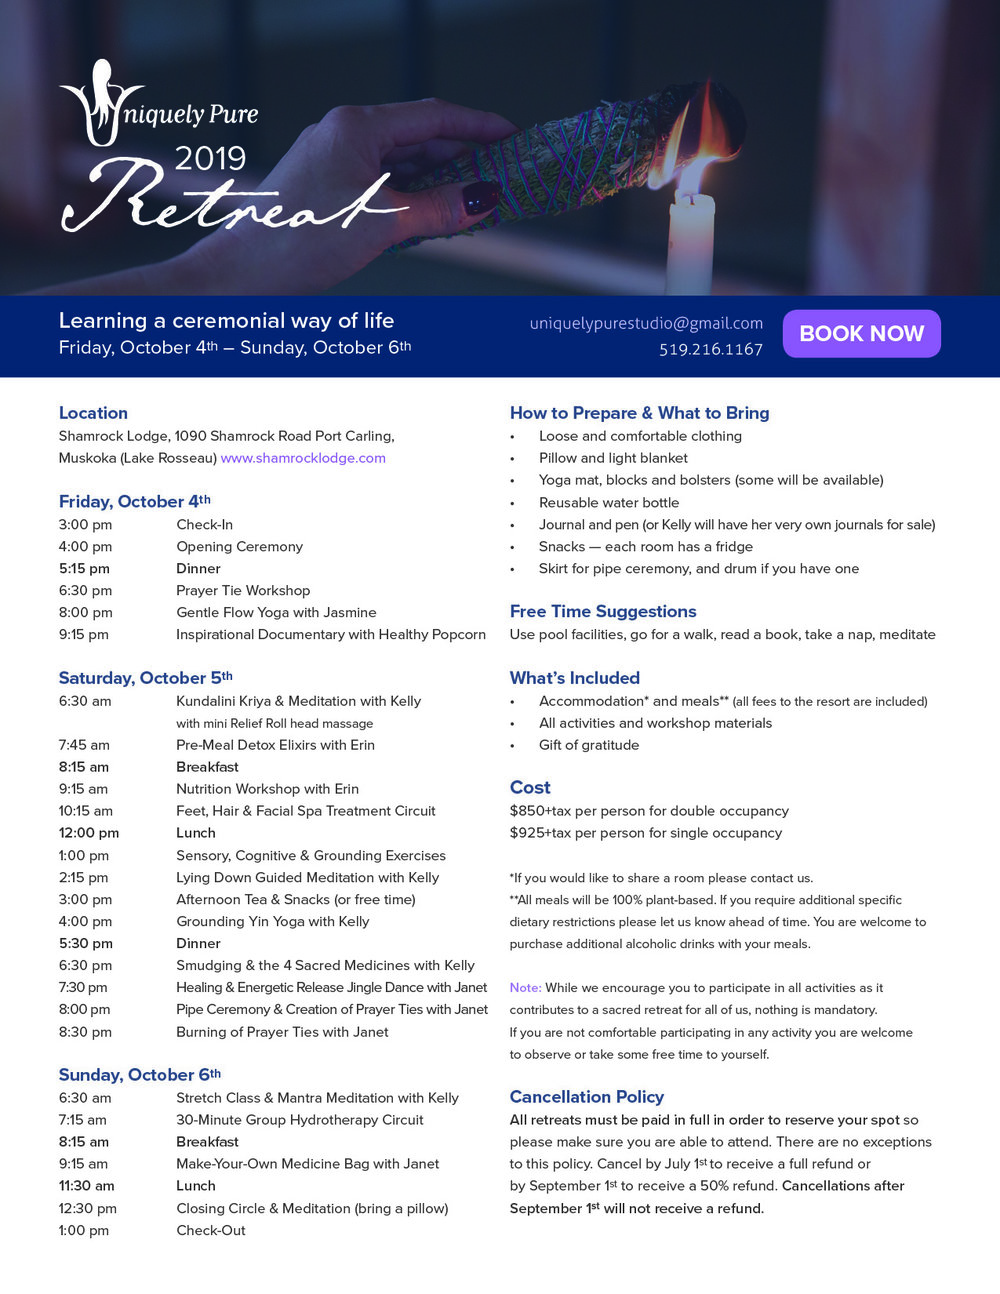 Uniquely Pure Retreat 2019 Itinerary (Jan Update).jpg